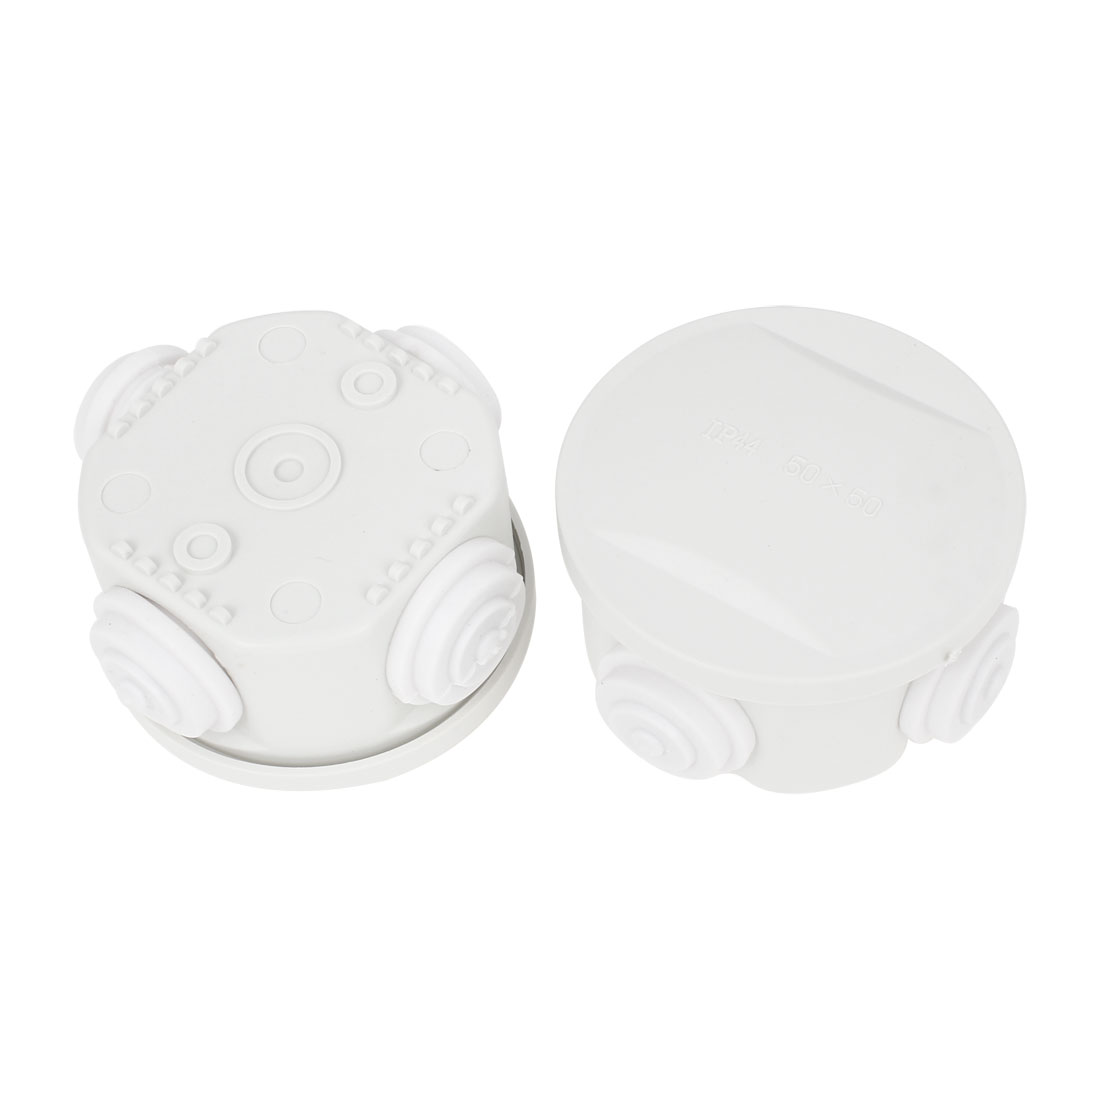 2 Pcs White ABS 50x50mm 4 Cable Entries Round Junction Box